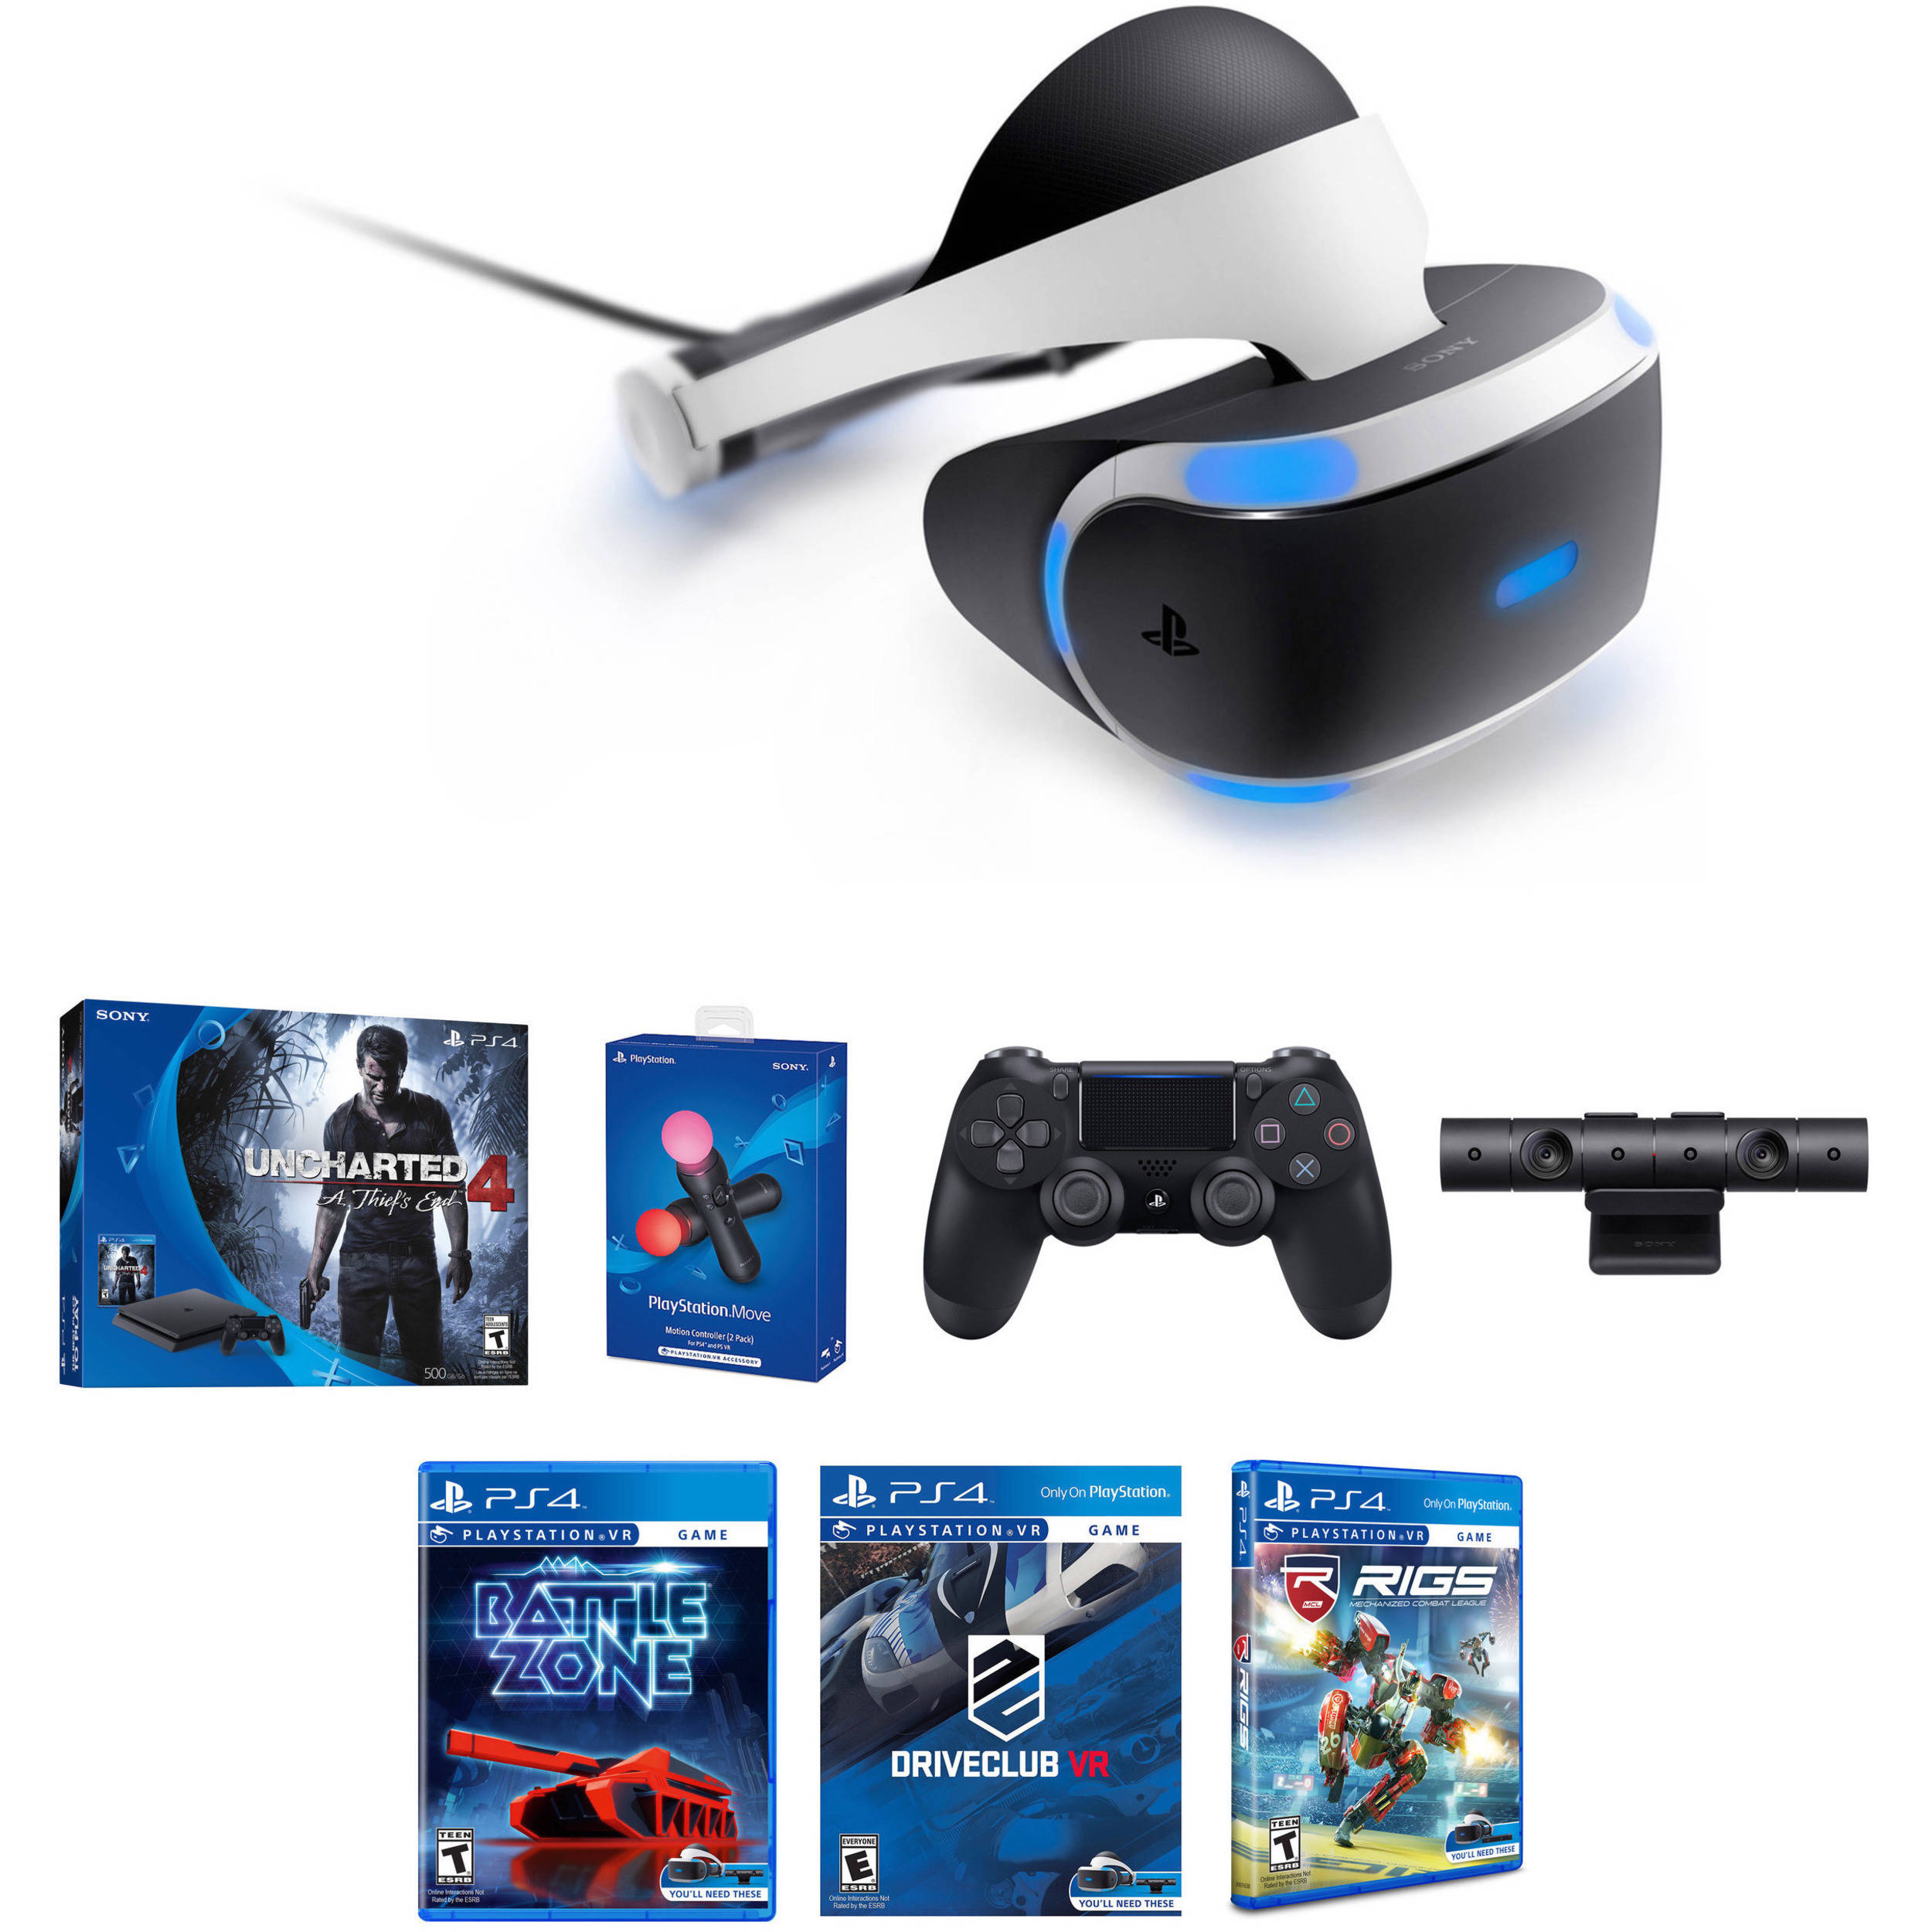 Sony Playstation Vr Bundle With Playstation 4 Slim Uncharted 4